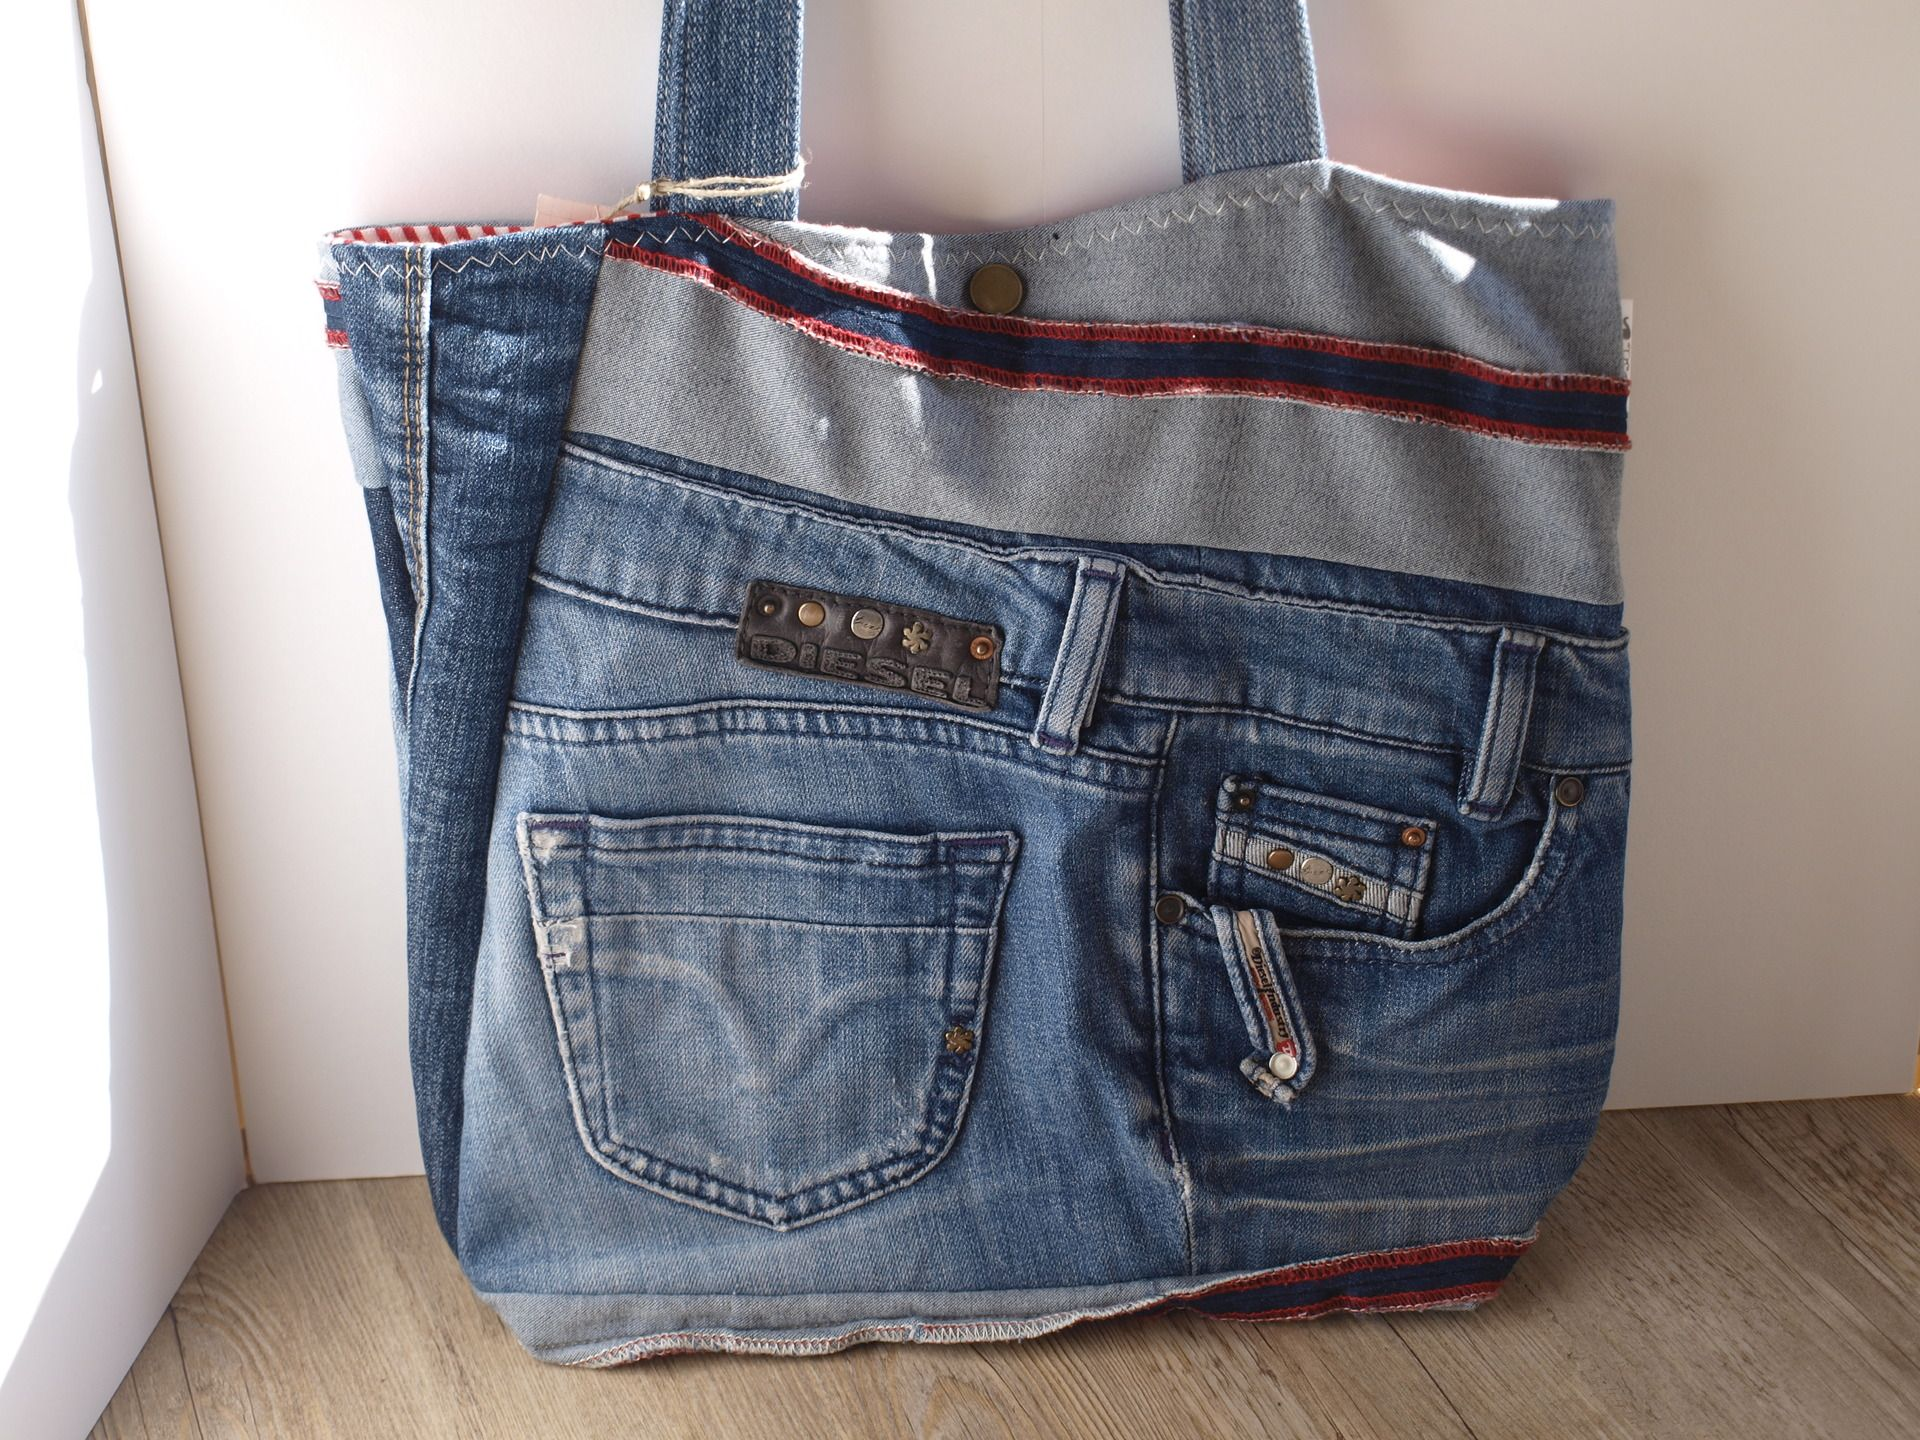 Sac en jean customisation fashion designs - Sac a main en jean ...